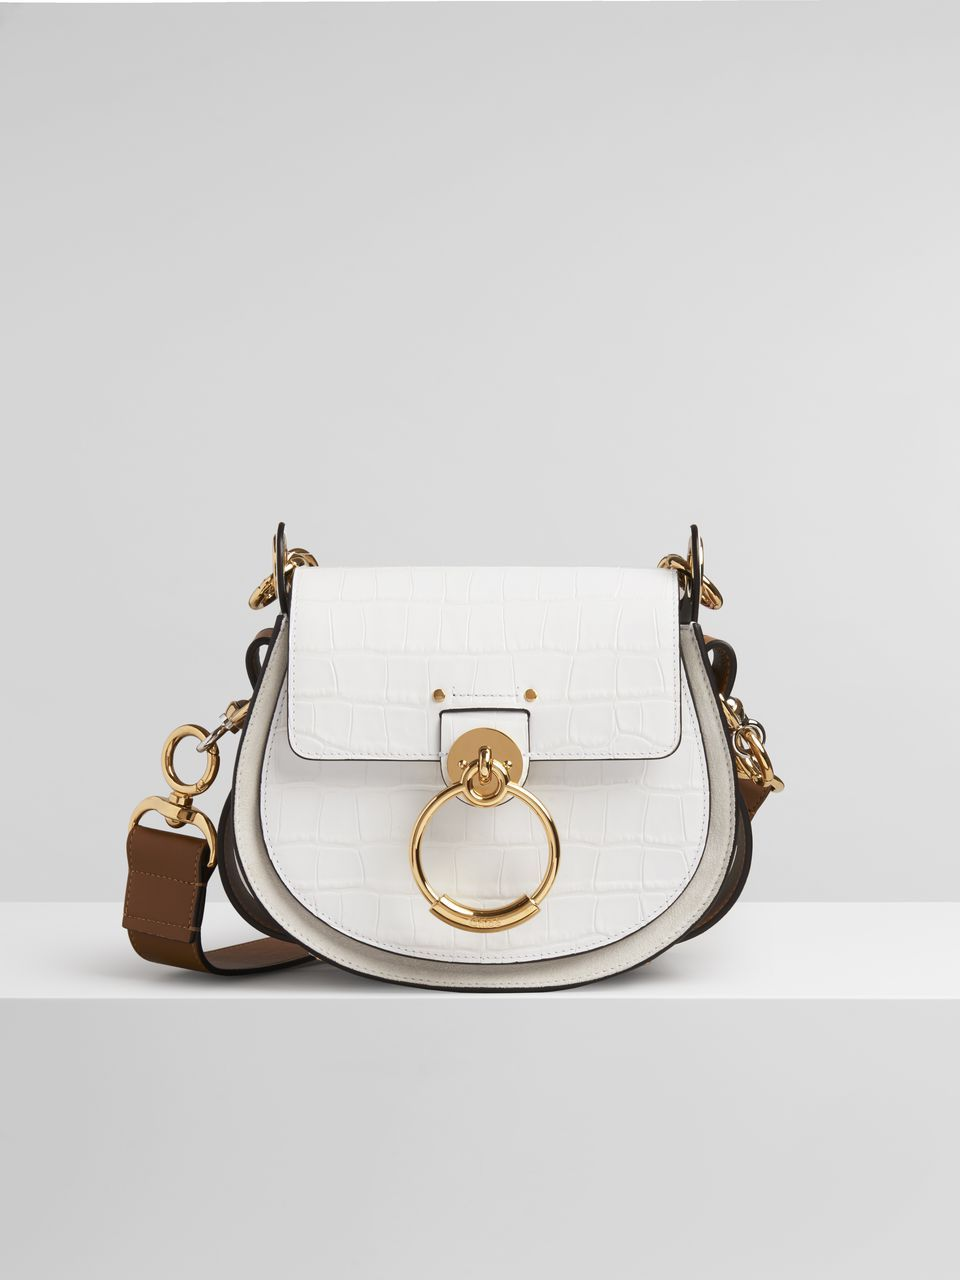 Small Tess Bag In Embossed Croco Effect On Calfskin Chloe Us Womens Designer Bags Bags Day Bag,Modern Exhibition Stand Design